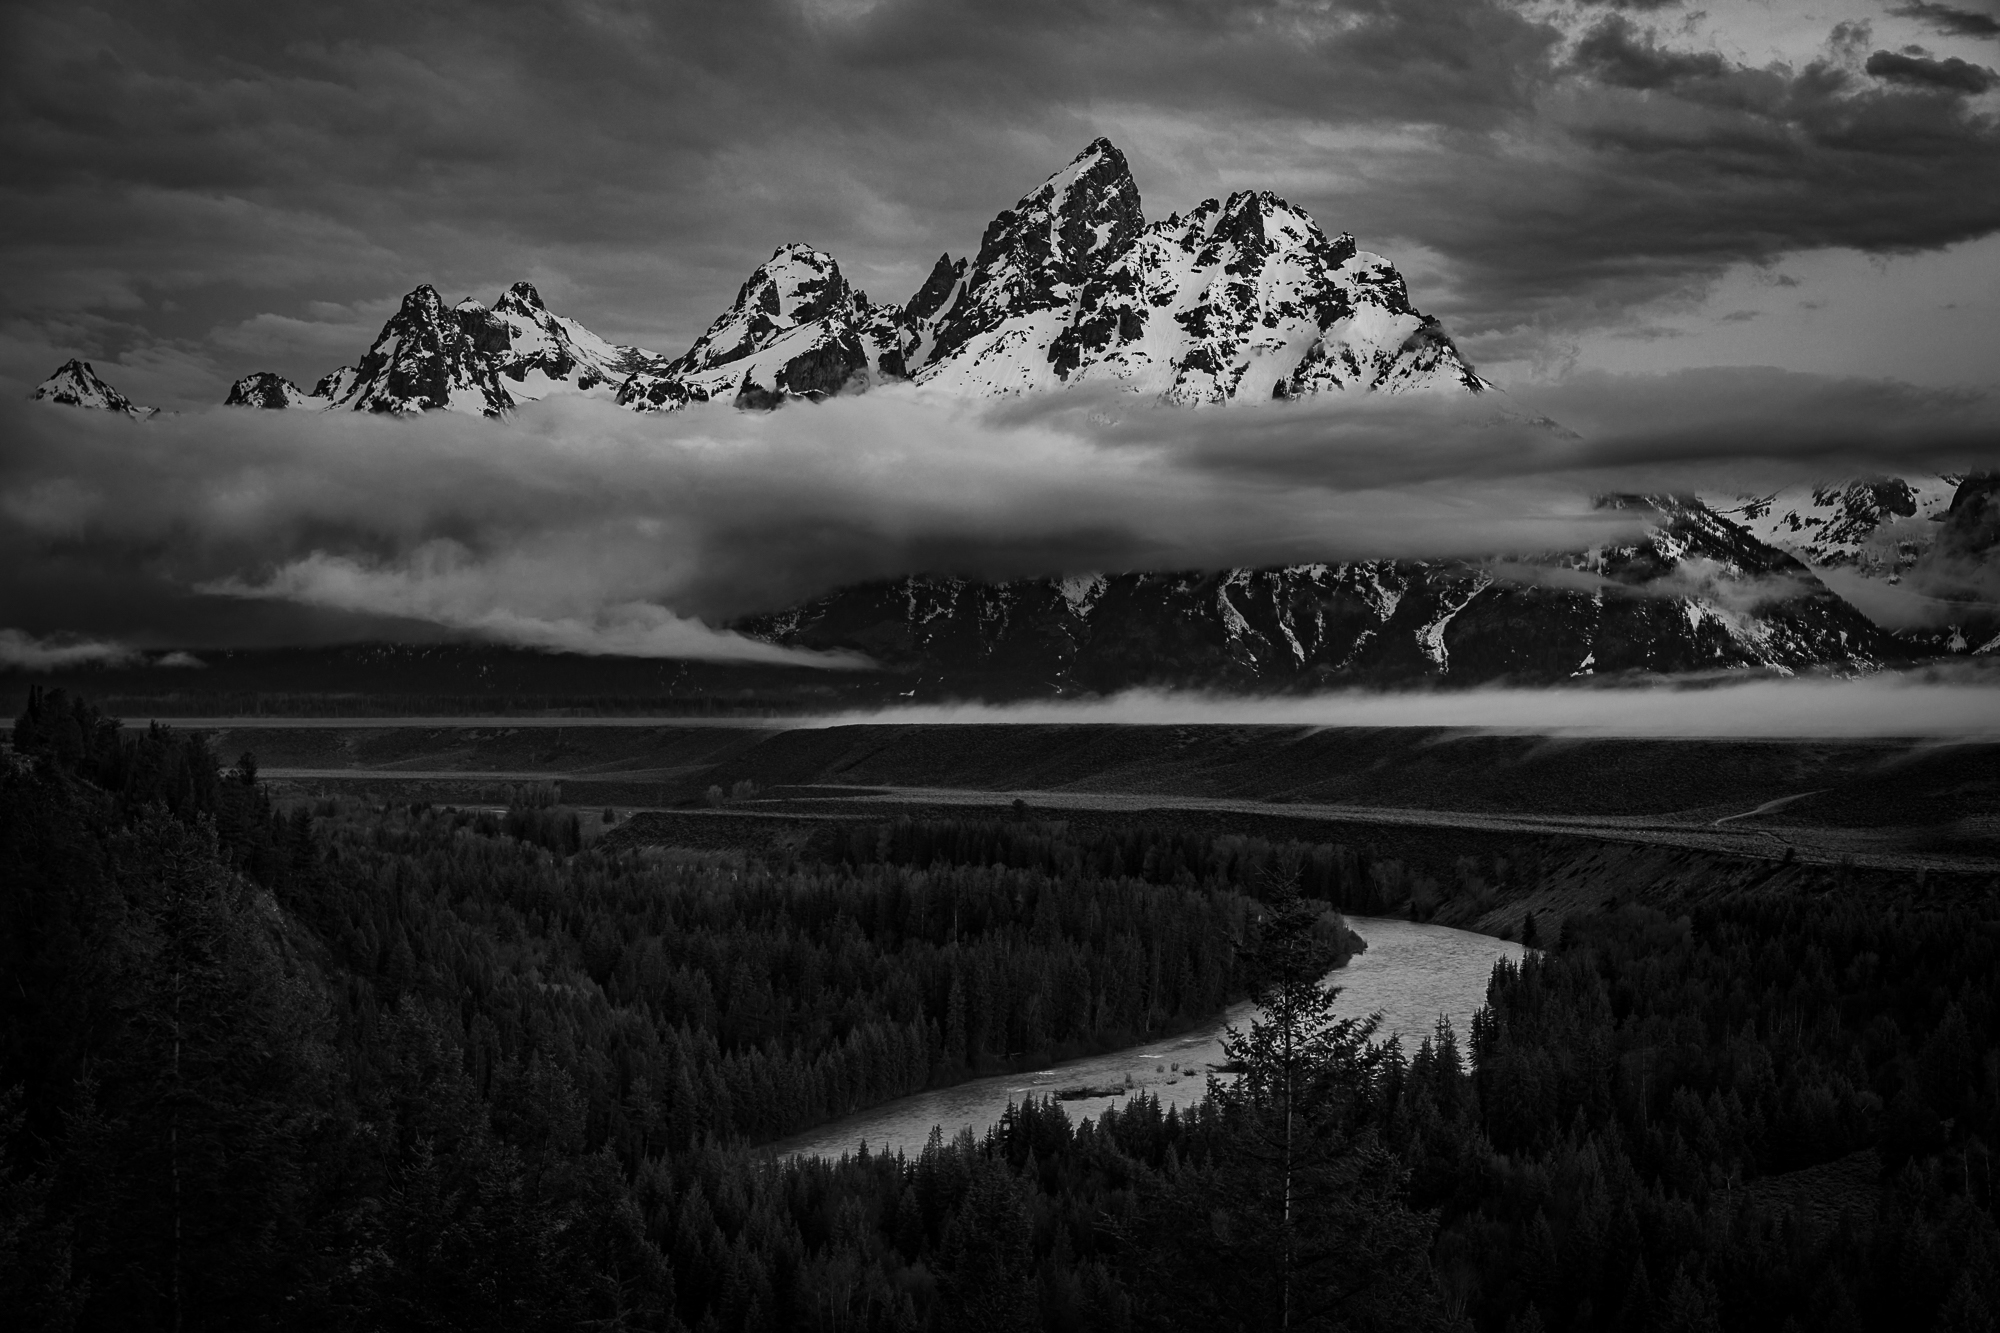 Snake River made famous by Ansel Adams